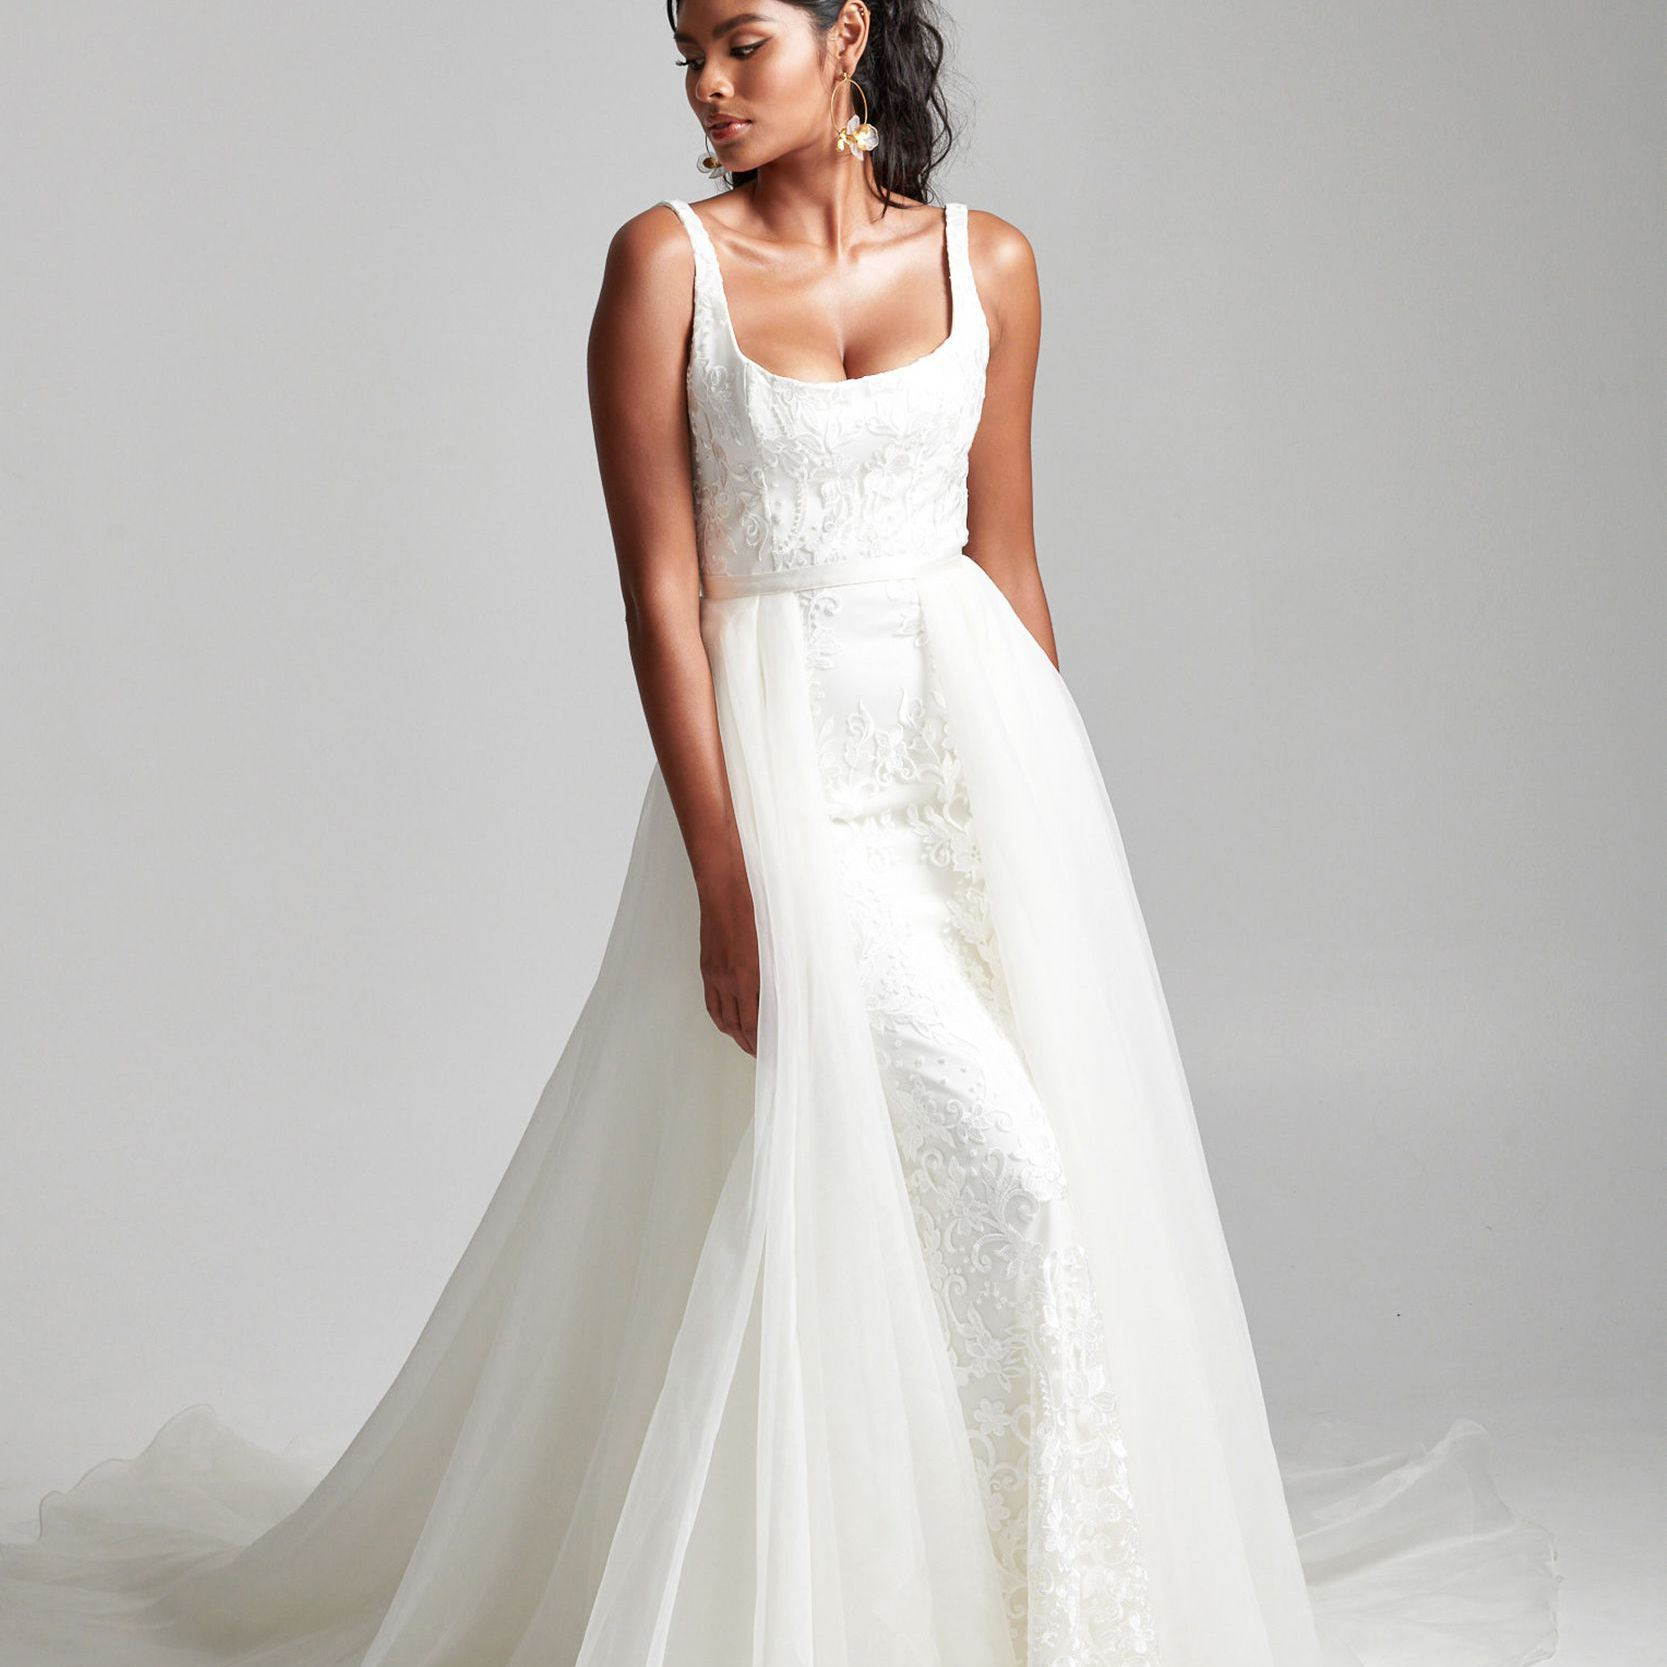 Model in sleeveless lace wedding gown with tulle overskirt